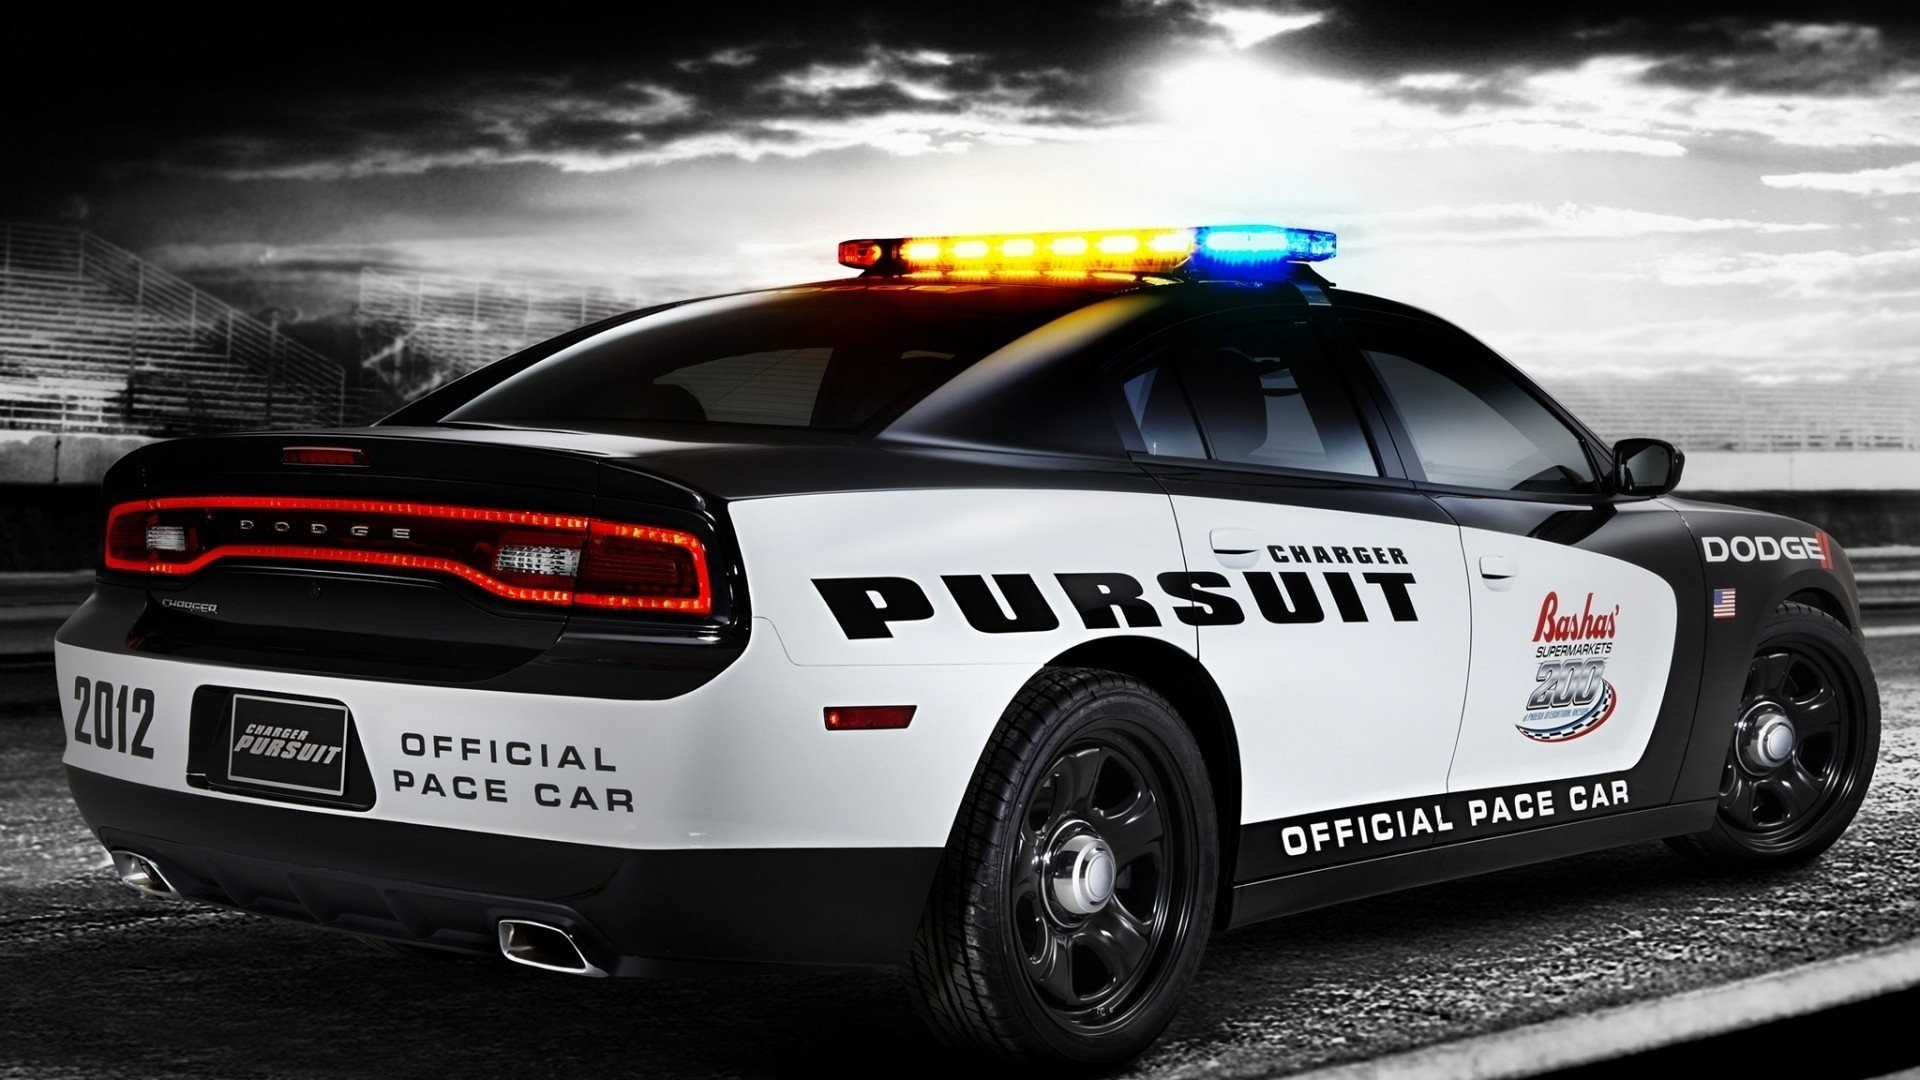 police car cars collection desktop wallpapers background track dodge